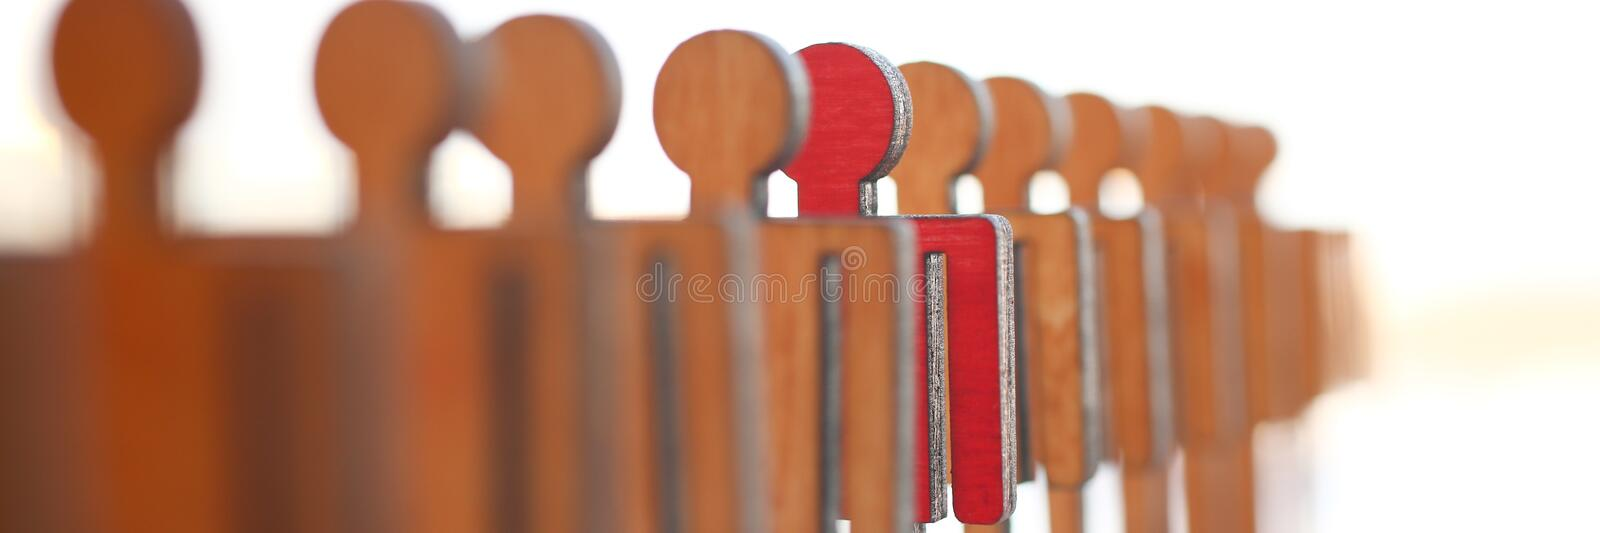 Male red plastic toy businessman silhouette. Wooden figure background closeup. Manipulate work recruitment transfer labour inspectorate experience exchange man stock photo